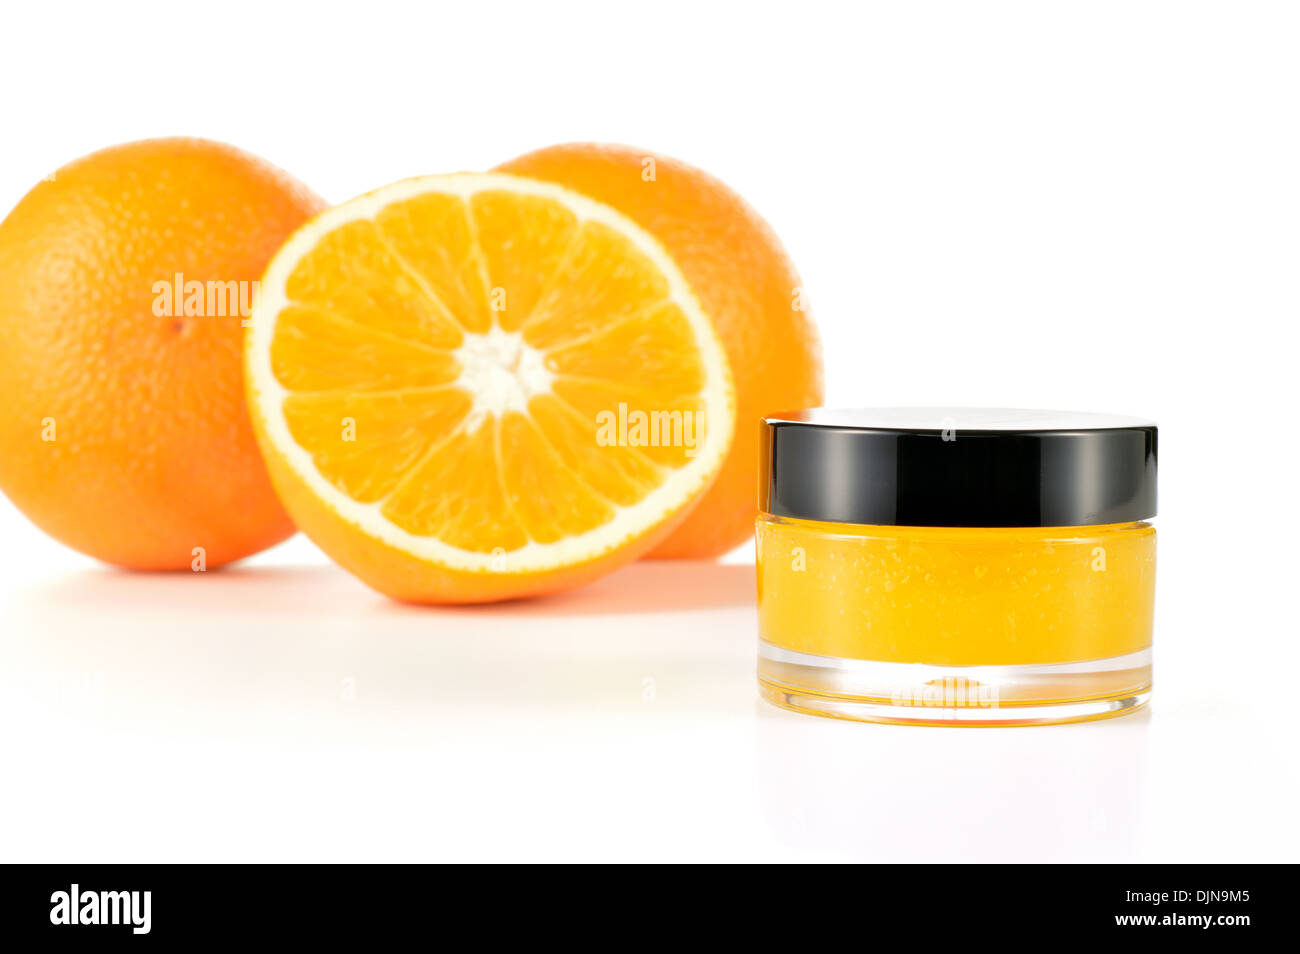 Natural orange sugar lip scrub on white background. Orange cosmetic in a glass jar with oranges in a background. - Stock Image